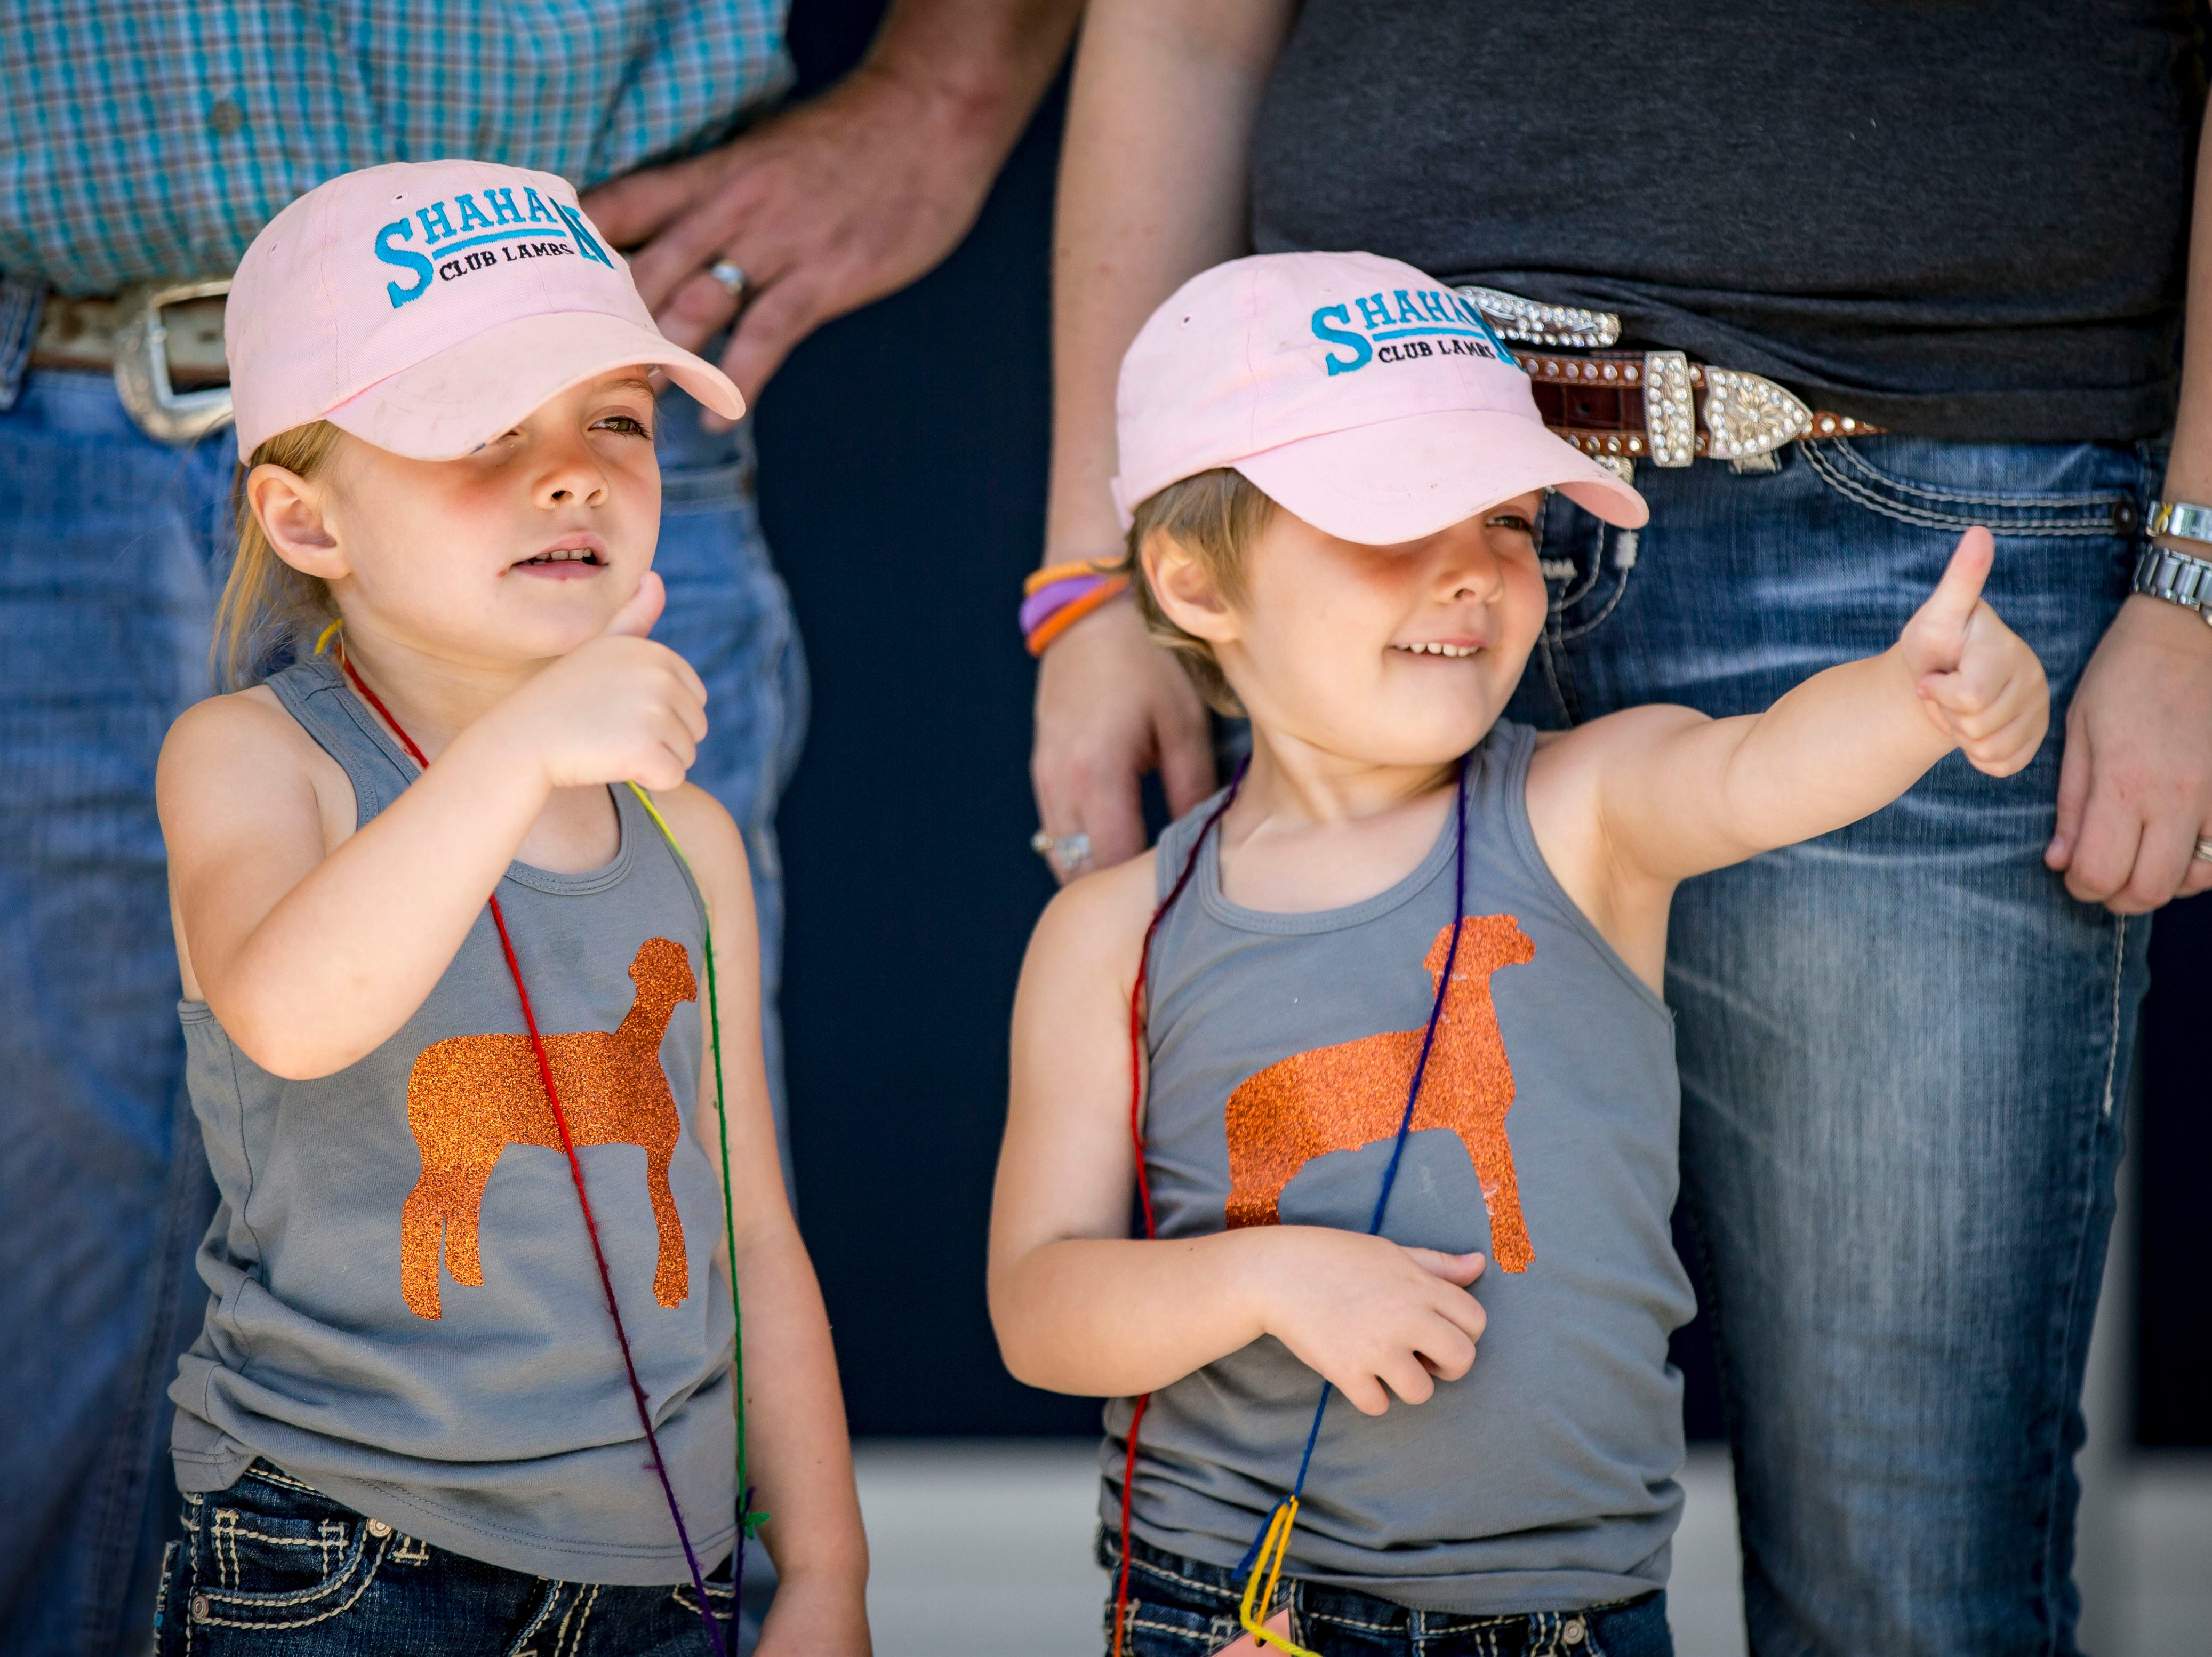 Becca, left, and Avril Shahan of Jefferson compete in the four-year-old most alike category during the Twins, Triplets and More Contest on the Anne and Bill Riley Stage at the 2018 Iowa State Fair in Des Moines Thursday, Aug. 9, 2018.